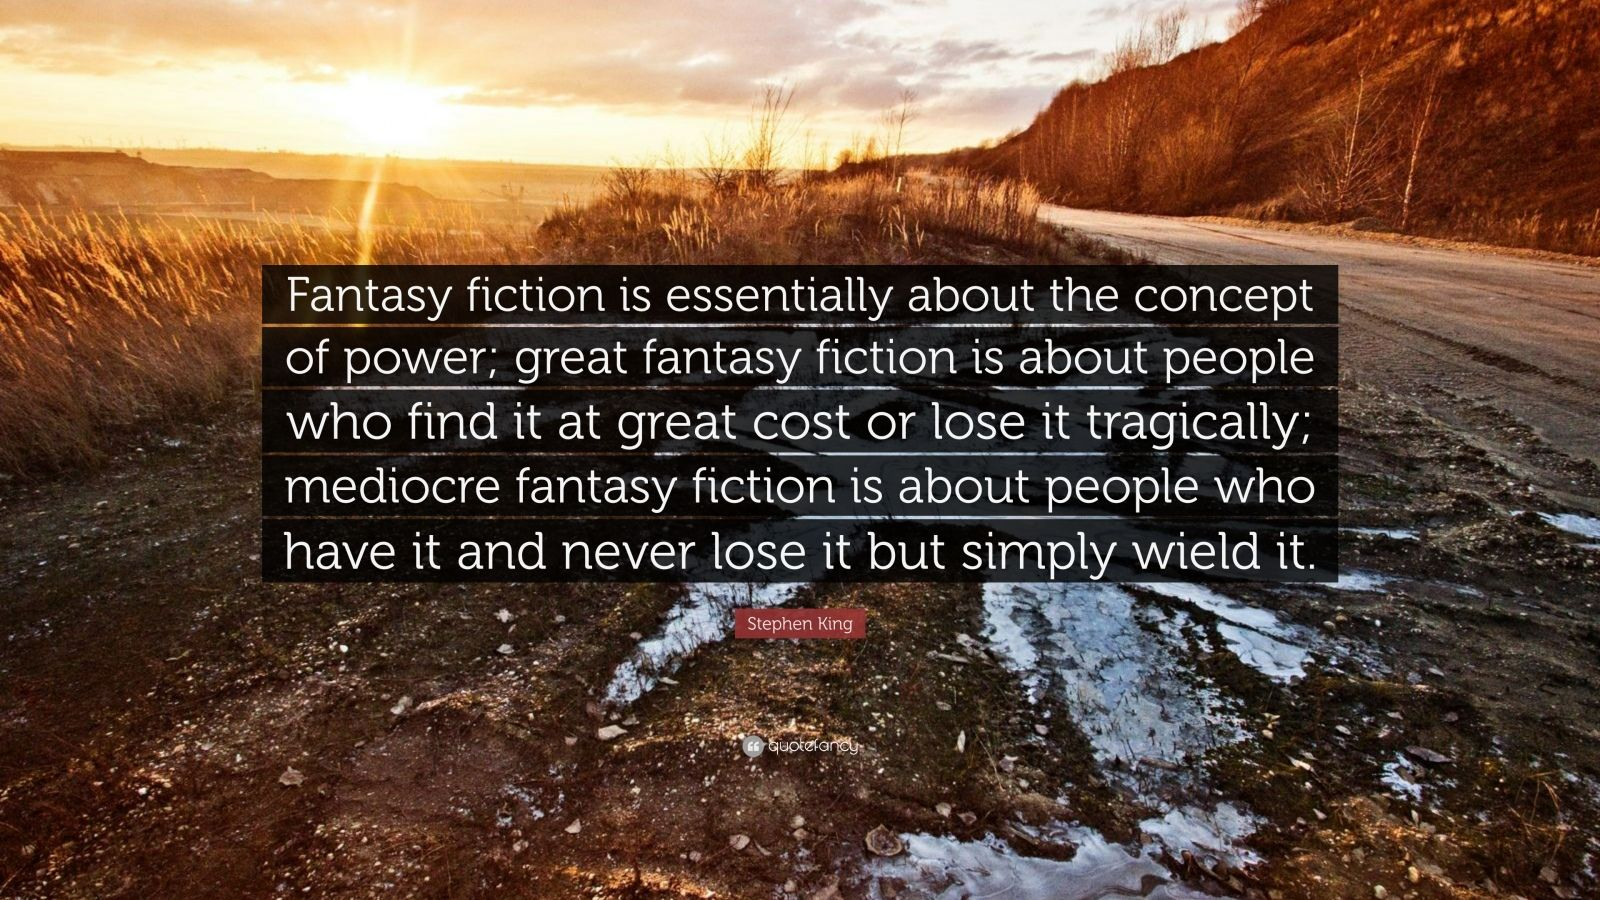 """Stephen King Quote: """"Fantasy fiction is essentially about the concept of power; great fantasy fiction is about people who find it at great cost or lose it tragically; mediocre fantasy fiction is about people who have it and never lose it but simply wield it."""""""